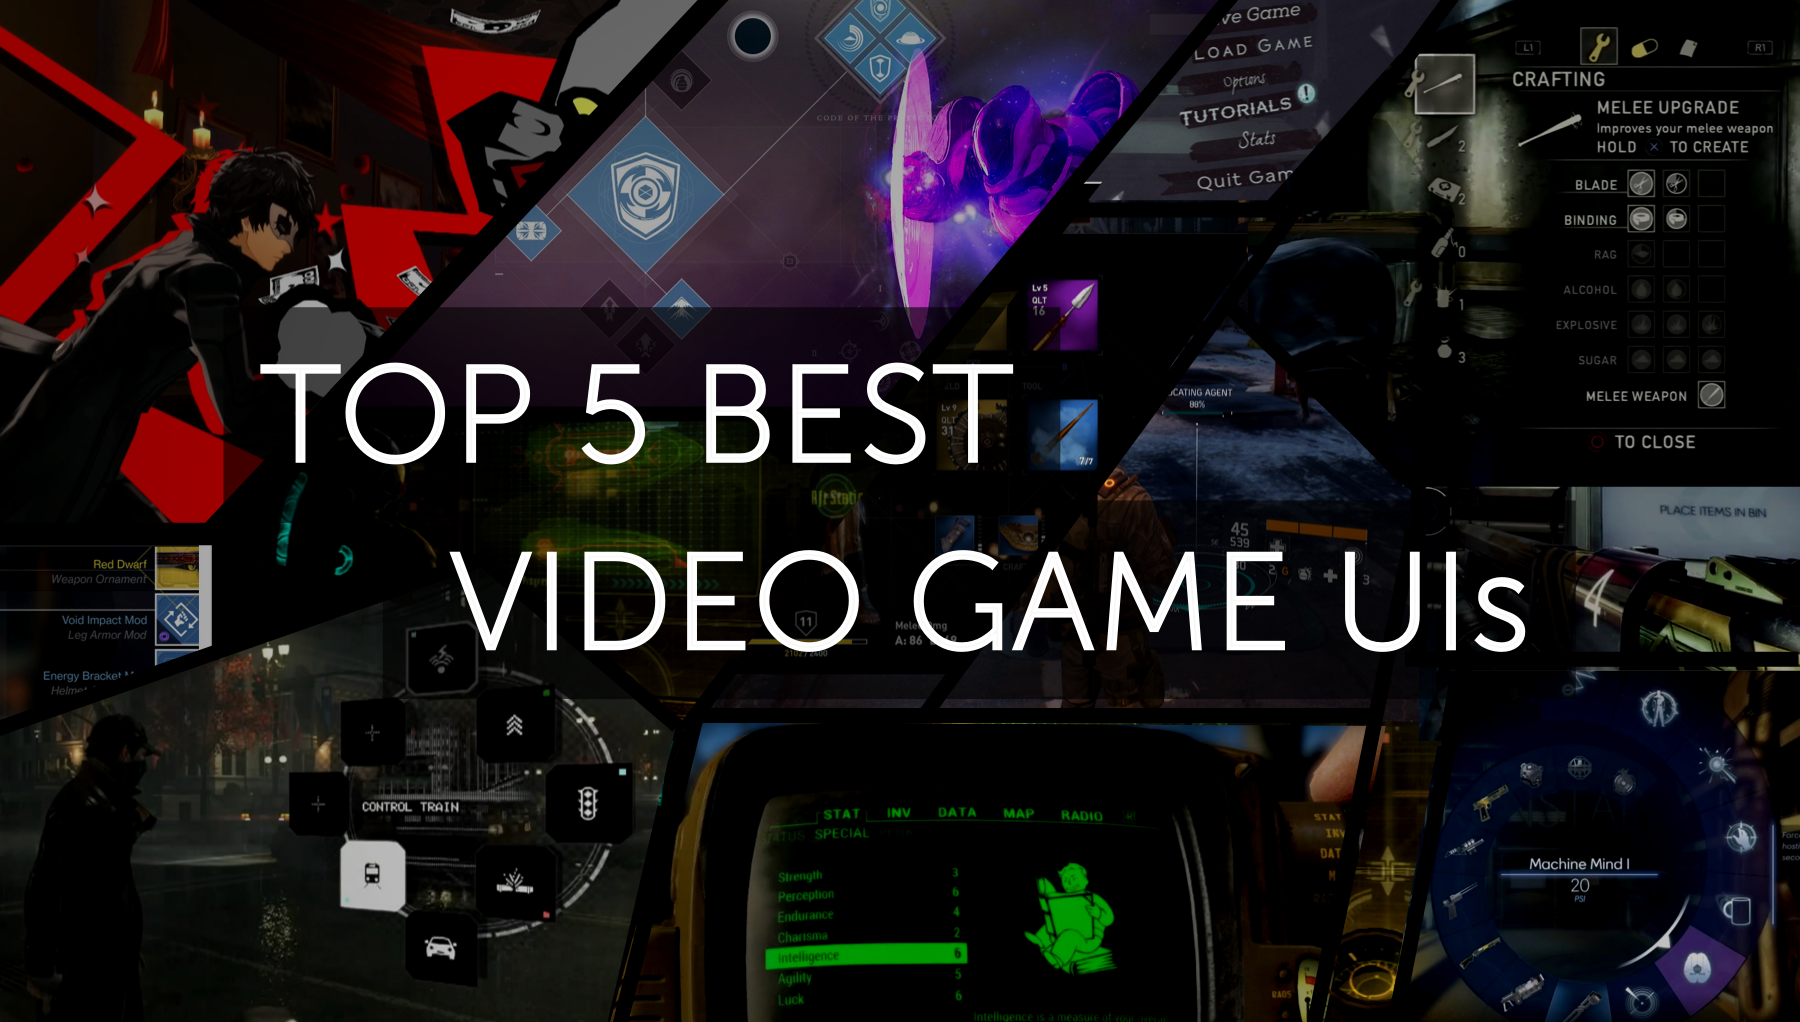 Top 5 best video game uis akhil dakinedi medium the ui of a video game is one of the least likely things about it to leave a lasting impression on you youll likely remember the tense atmosphere ccuart Images